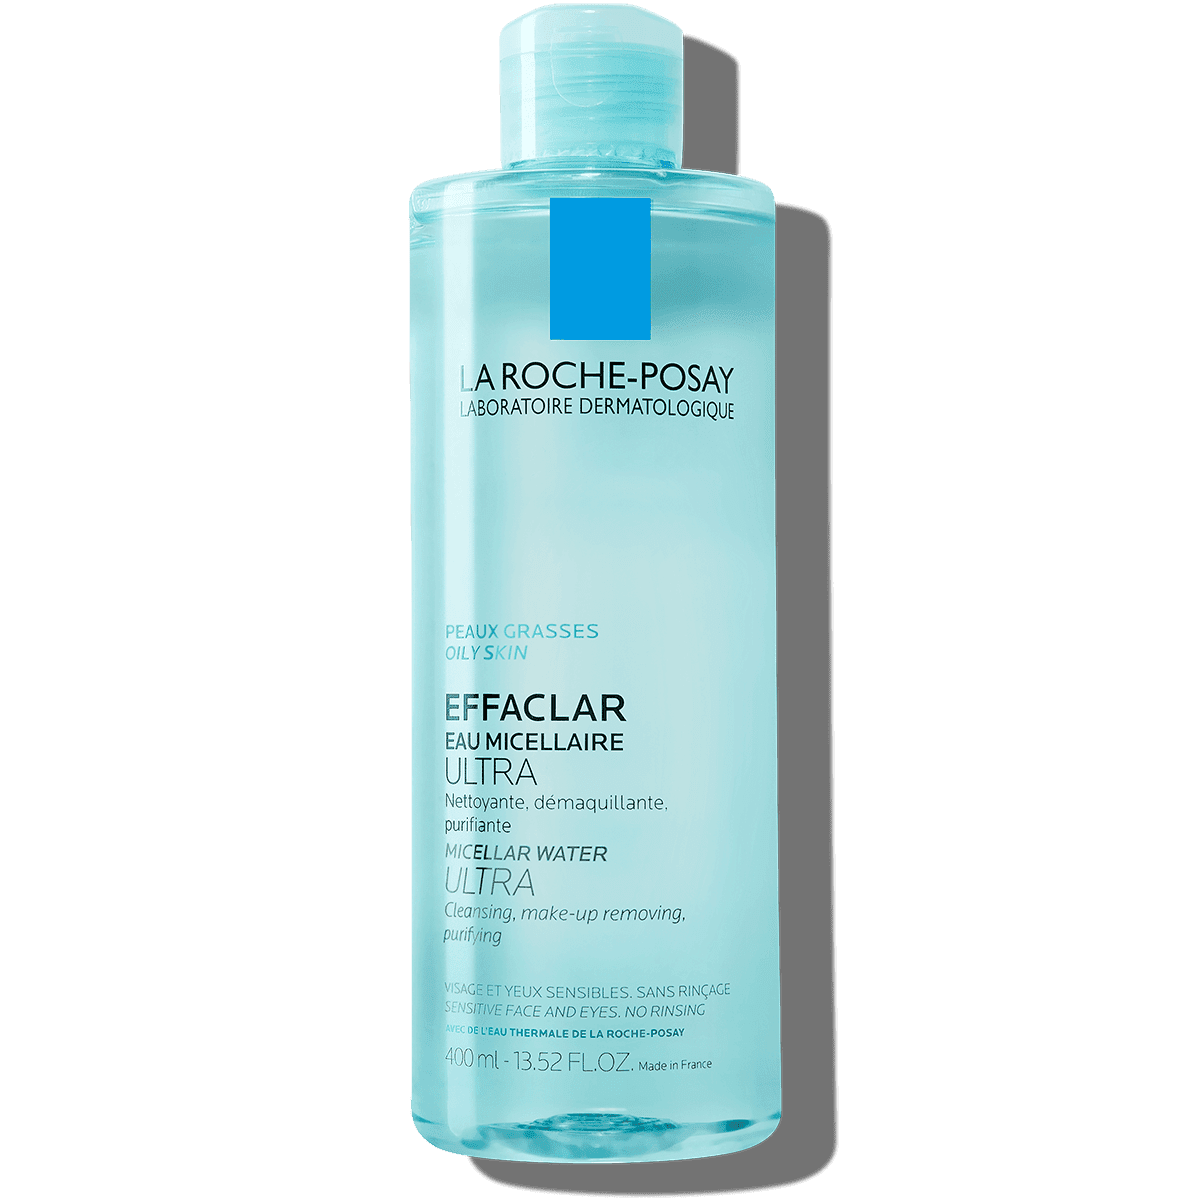 La Roche Posay Face Cleanser Effaclar Micellar Water Ultra 400ml 33378